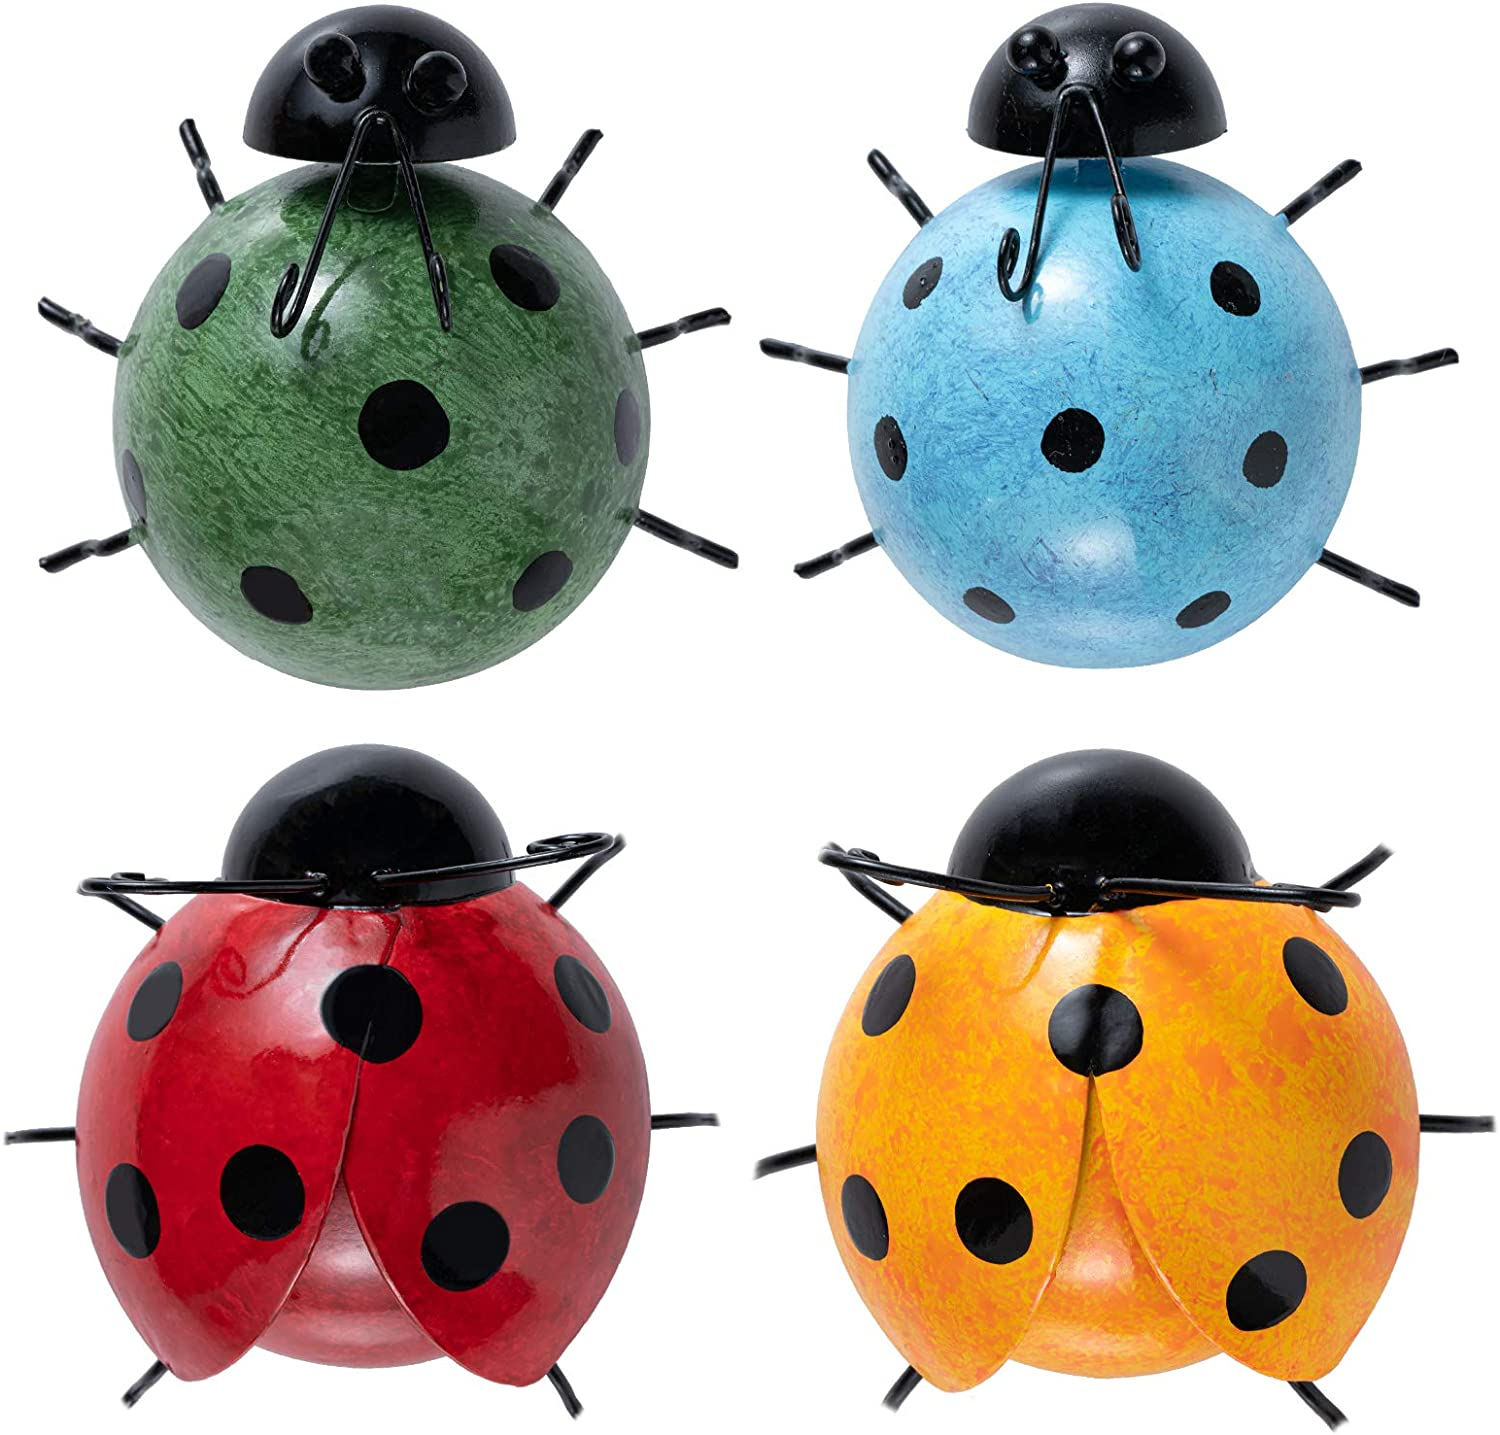 YEAHOME Cute Ladybugs Metal Wall Art, 3D Outdoor Wall Decor, Rustic Wall Sculptures & Statues for Farmhouse, Porch, Patio, Lawn, Fence, Backyard Set of 4